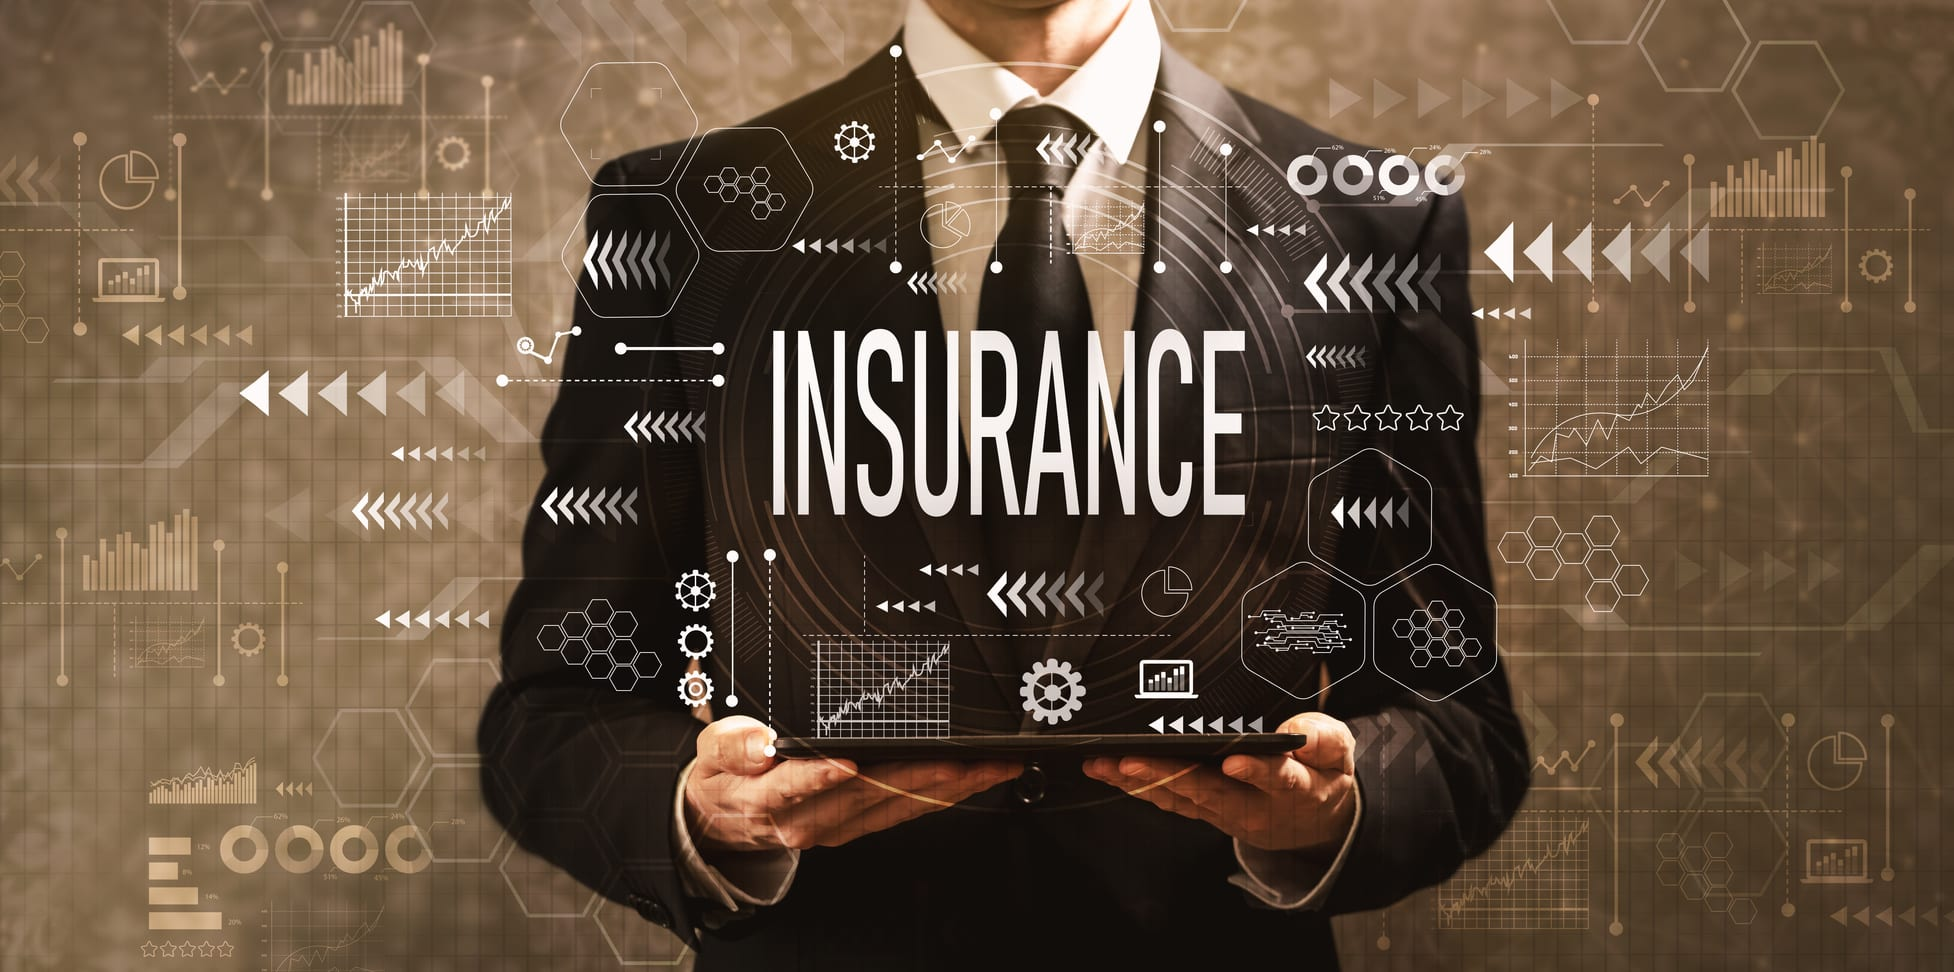 backdating insurance claims